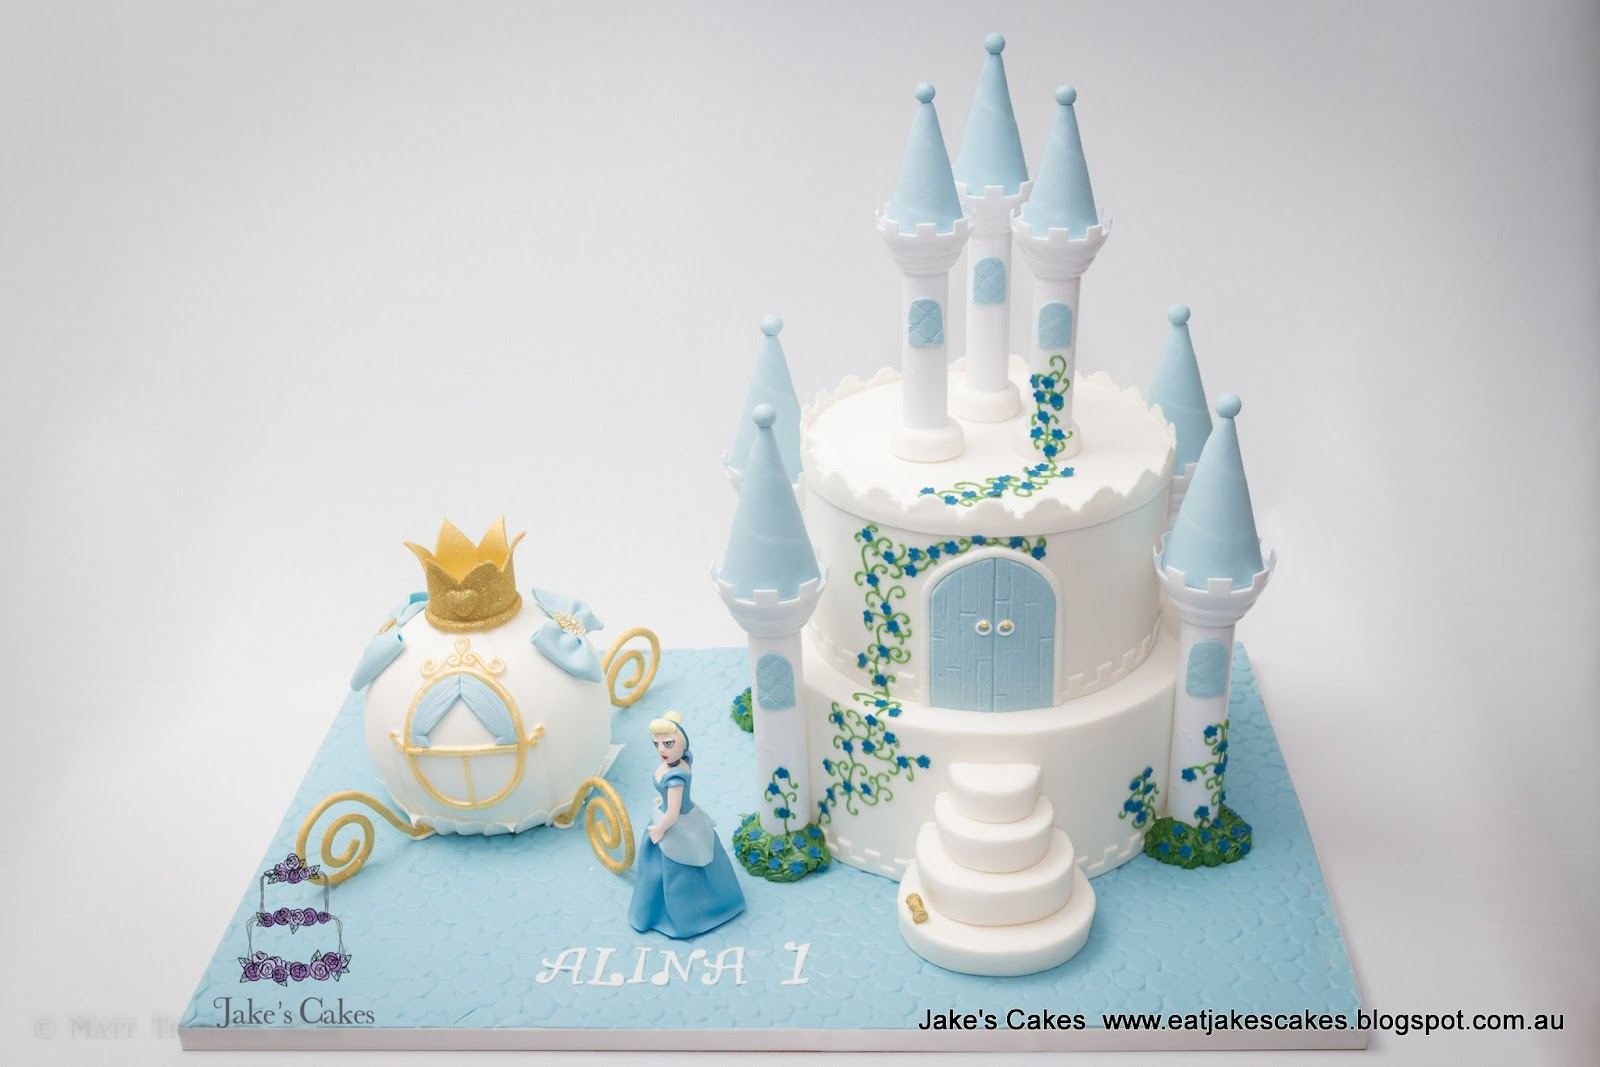 Jakes Cakes Cinderella Castle and Carriage Cake